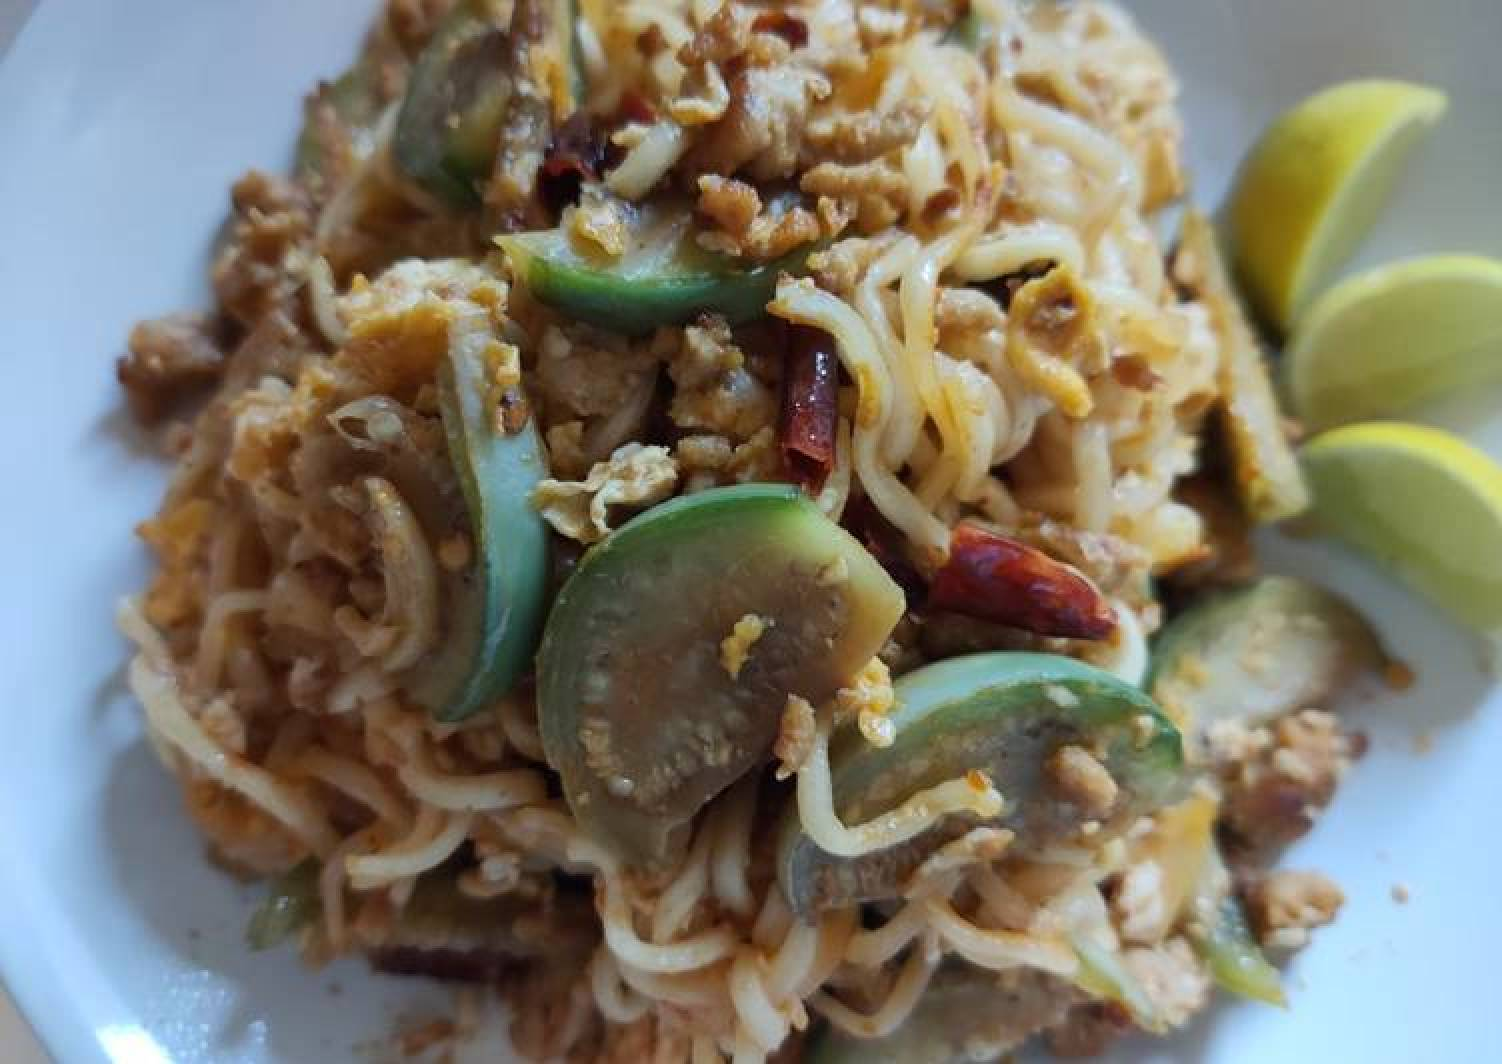 Fried noodle with dried hot chilli (มาม่าผัดพริกแห้ง)